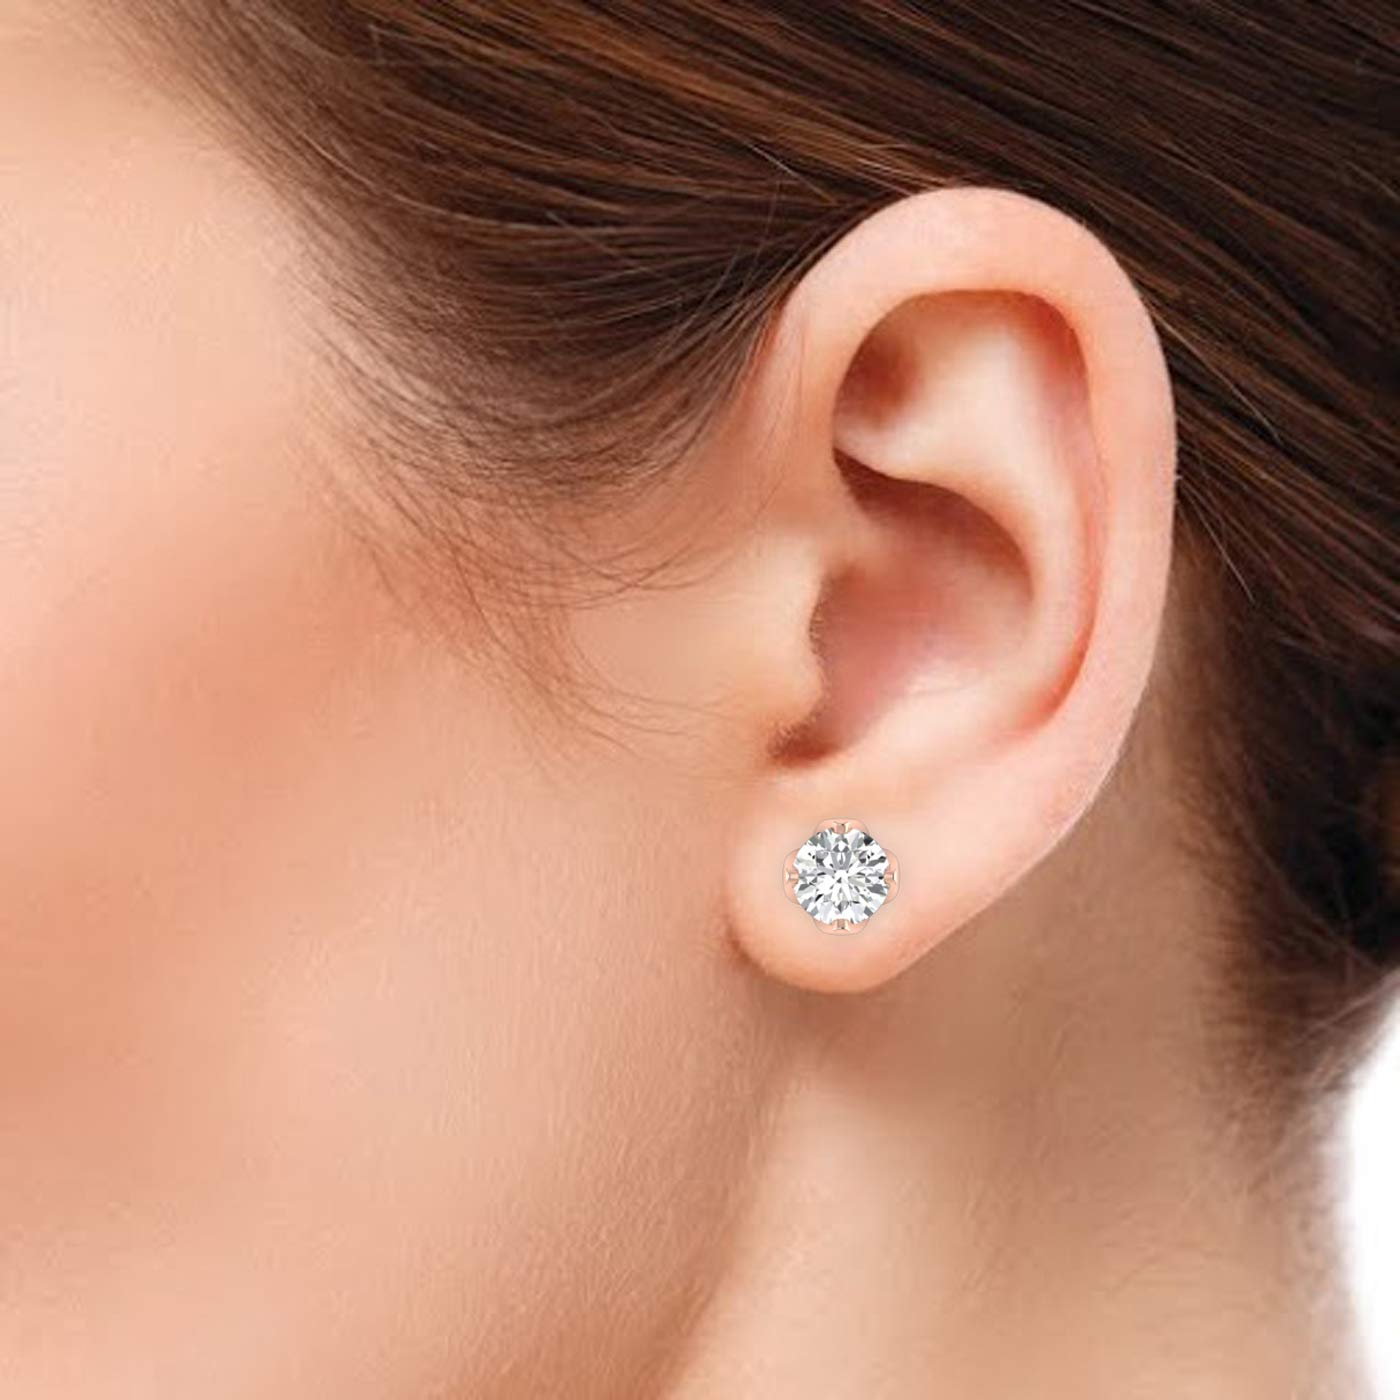 Round Brilliant Cut Moissanite Diamond Studded Earrings Color: 0.30 to 4.00 Carat GH Clarity: VVS